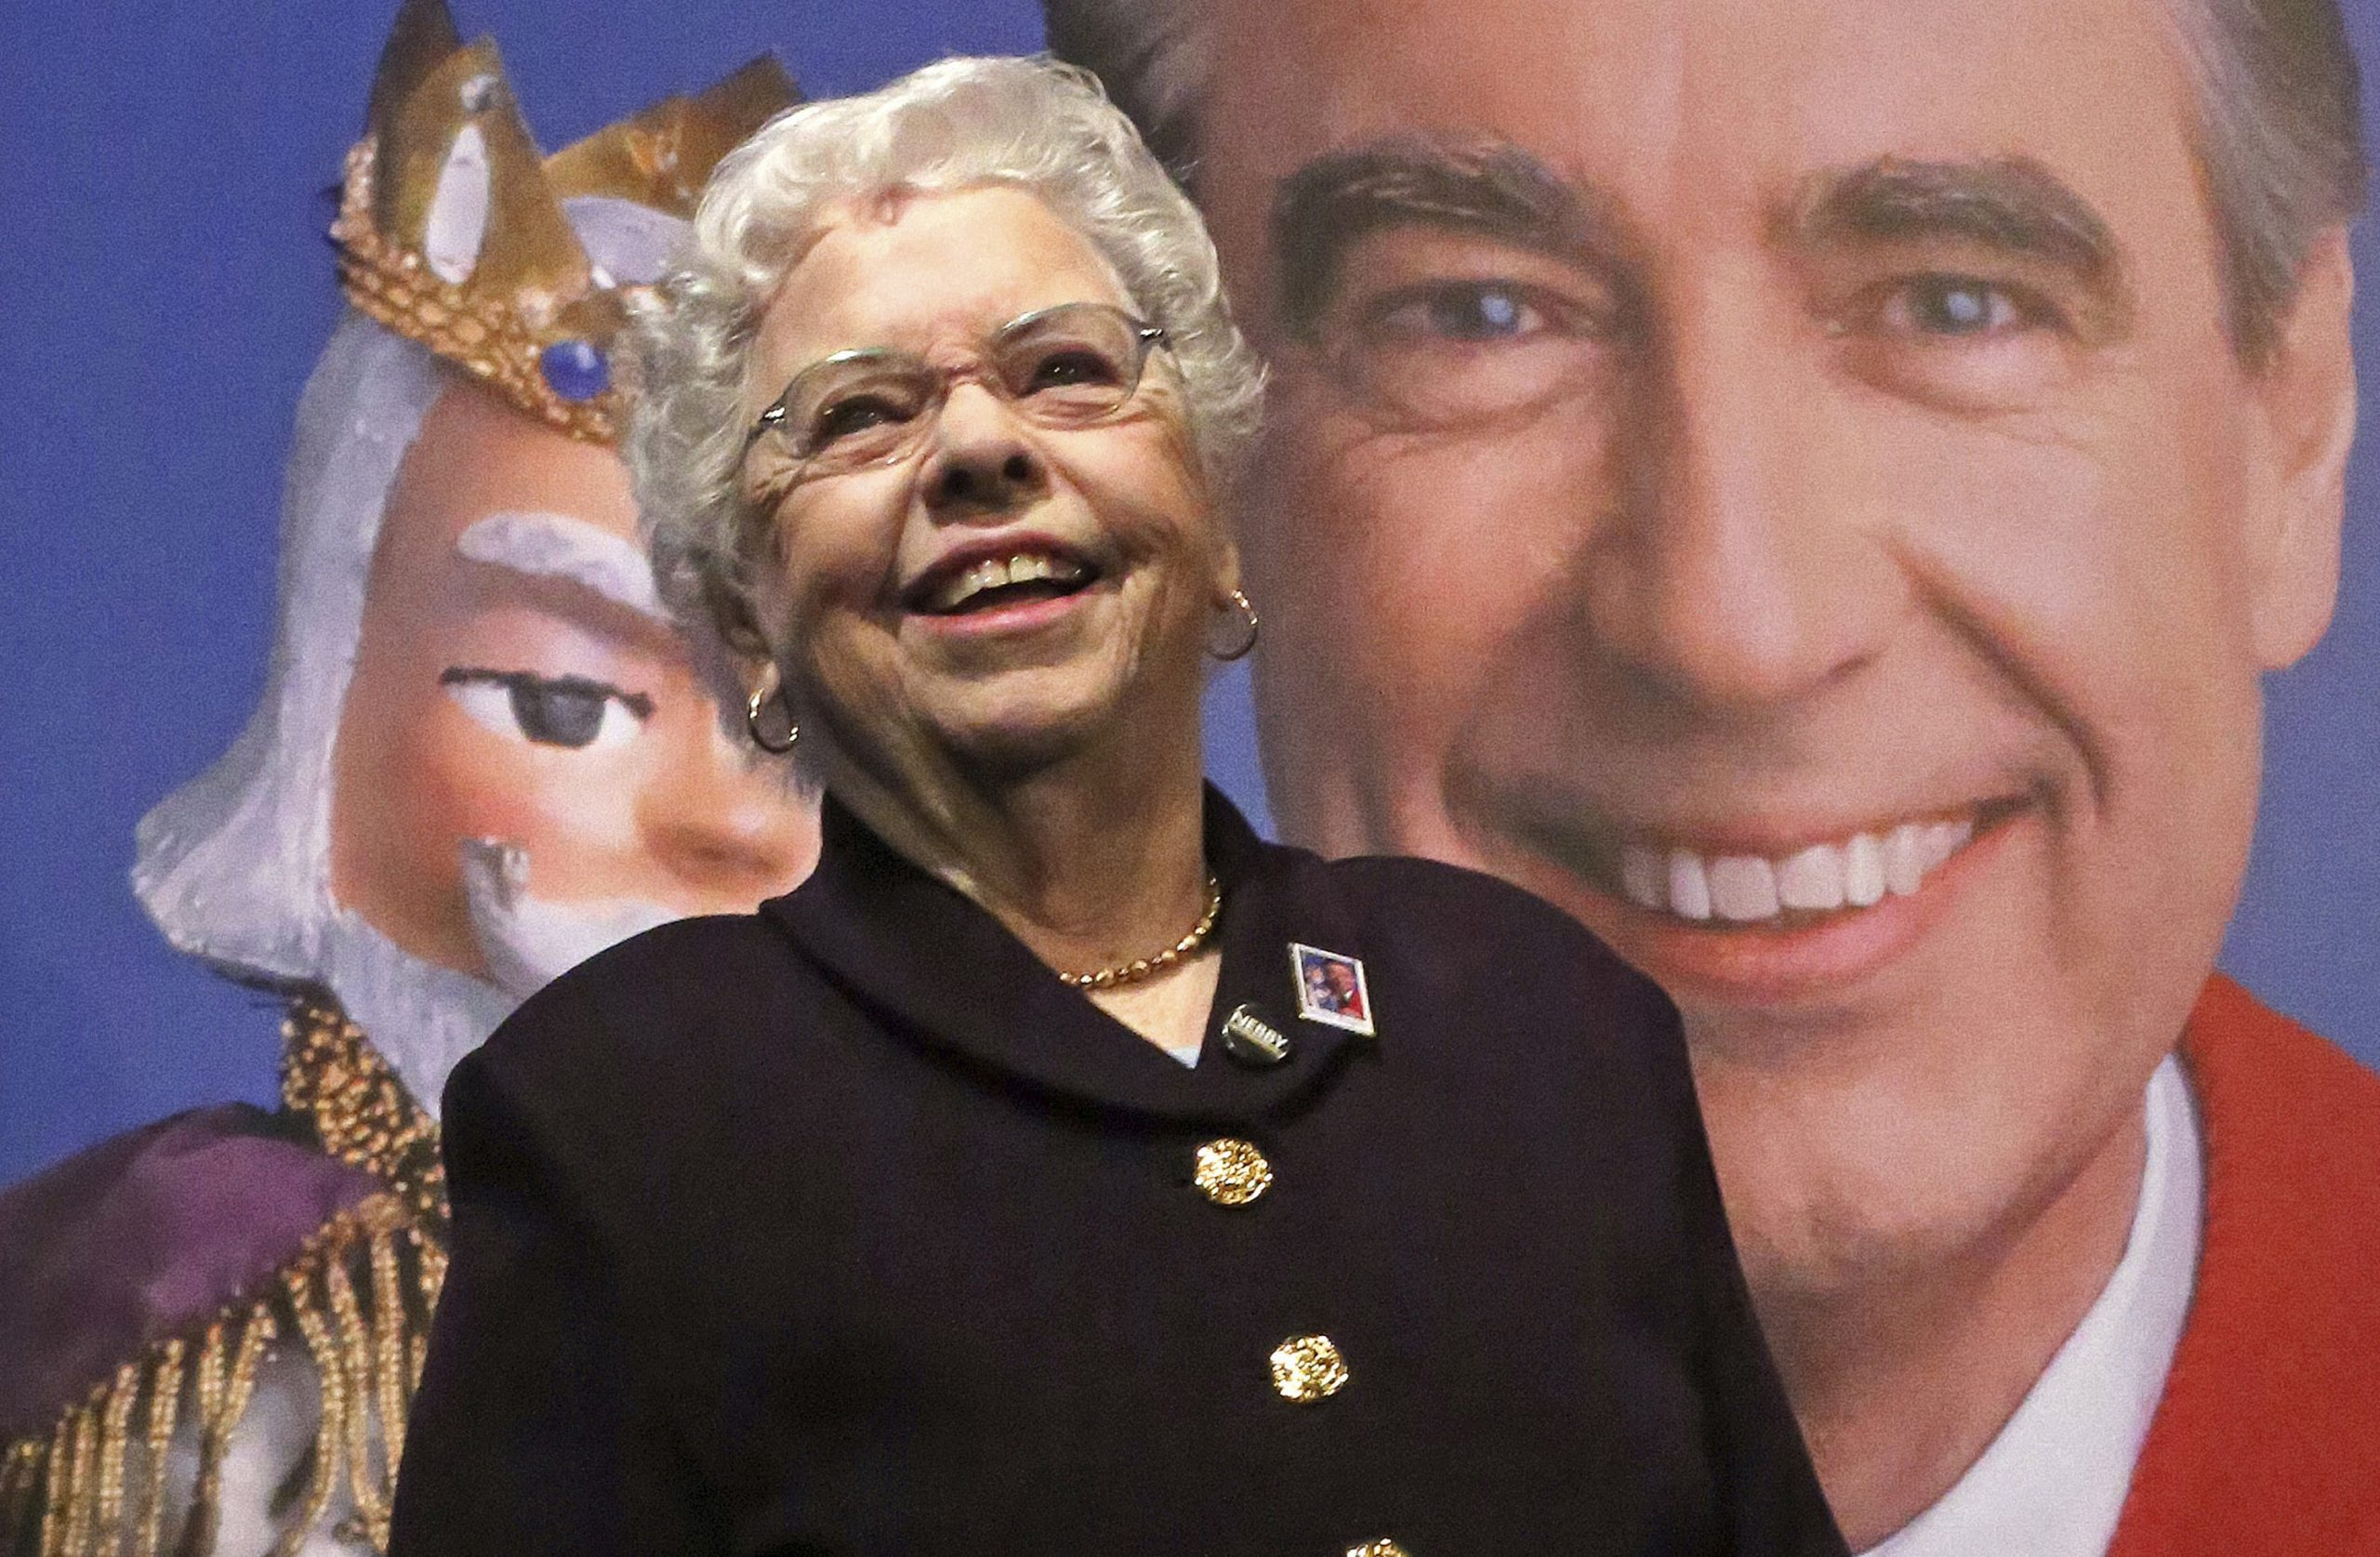 Joan Rogers, widow of the famous Mister Rogers, has died at the age of 92